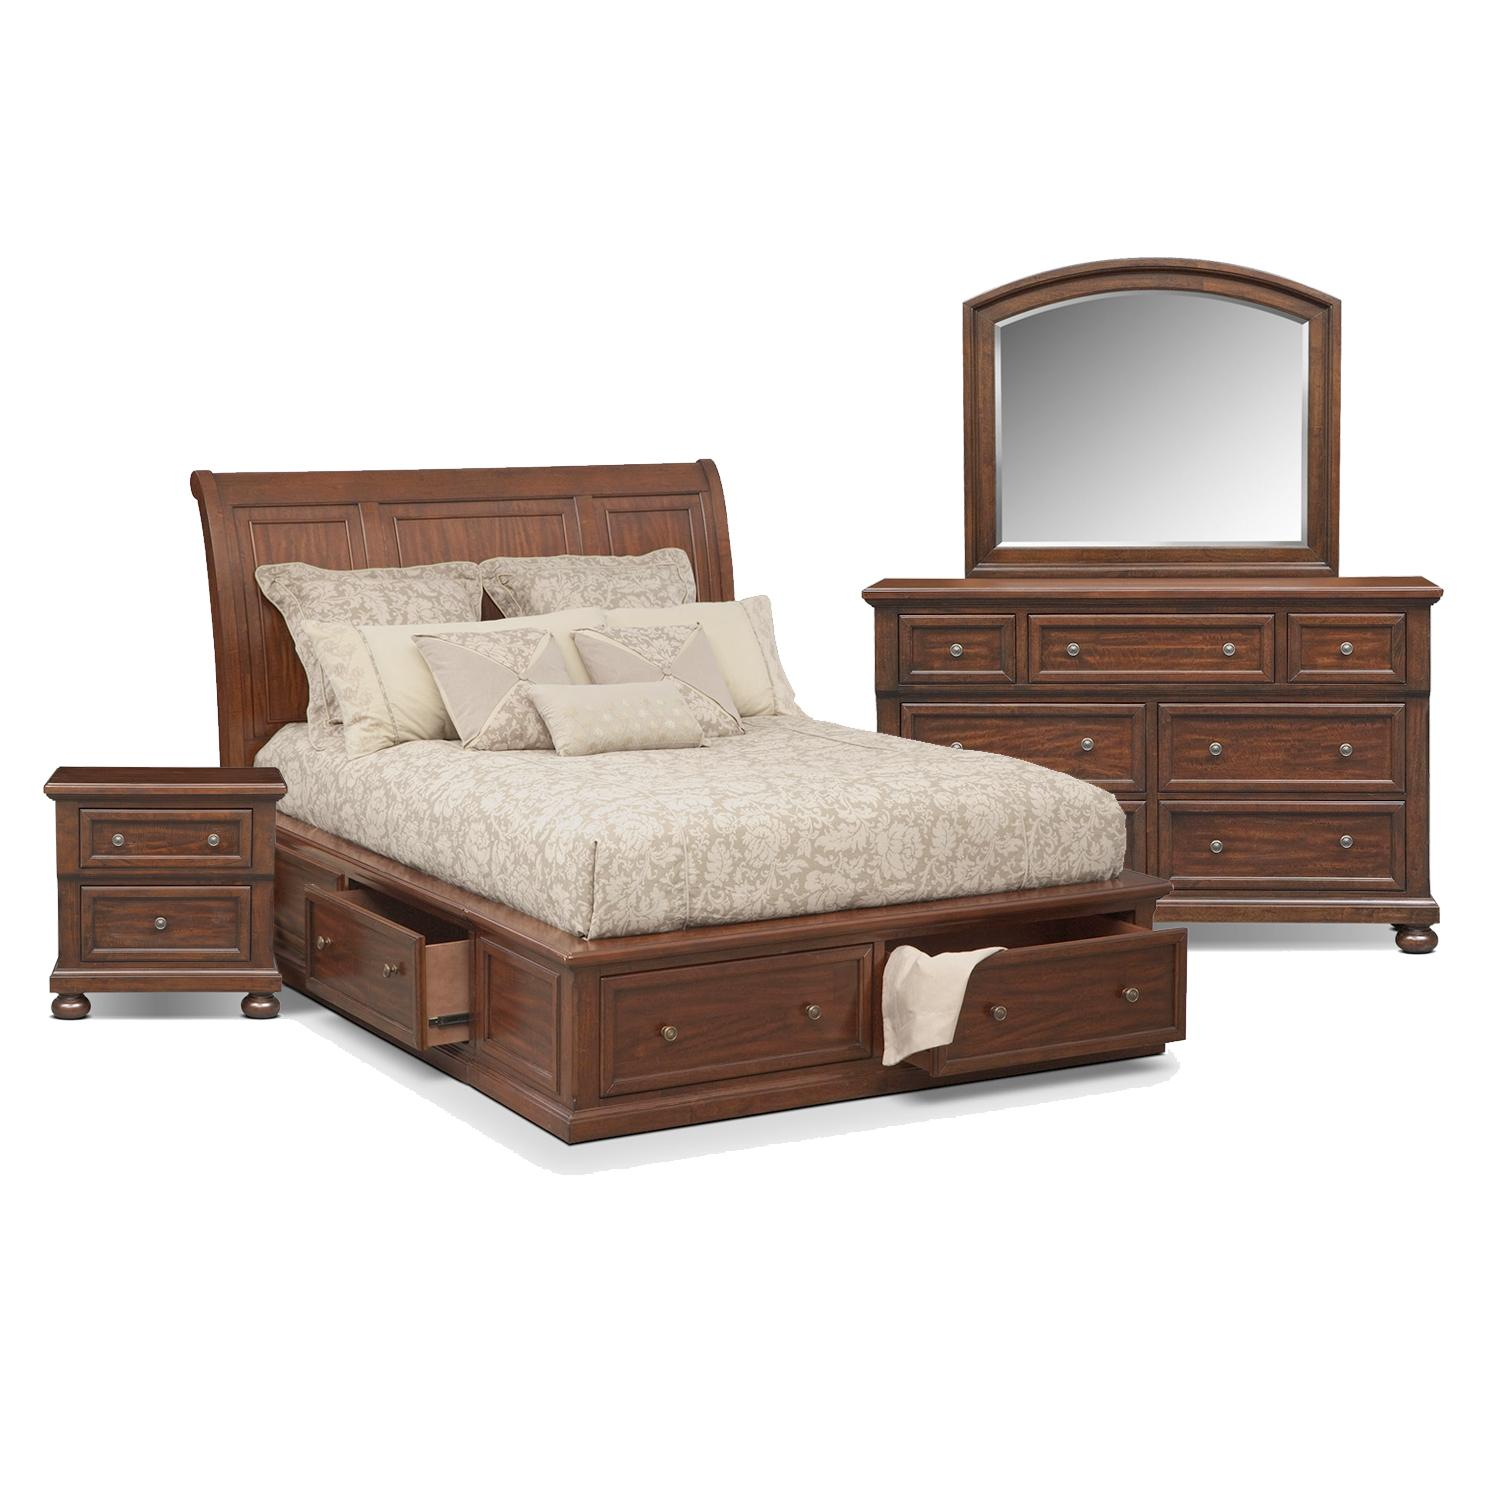 Furniture Images Impressive Bedroom Furniture  Value City Furniture Design Inspiration